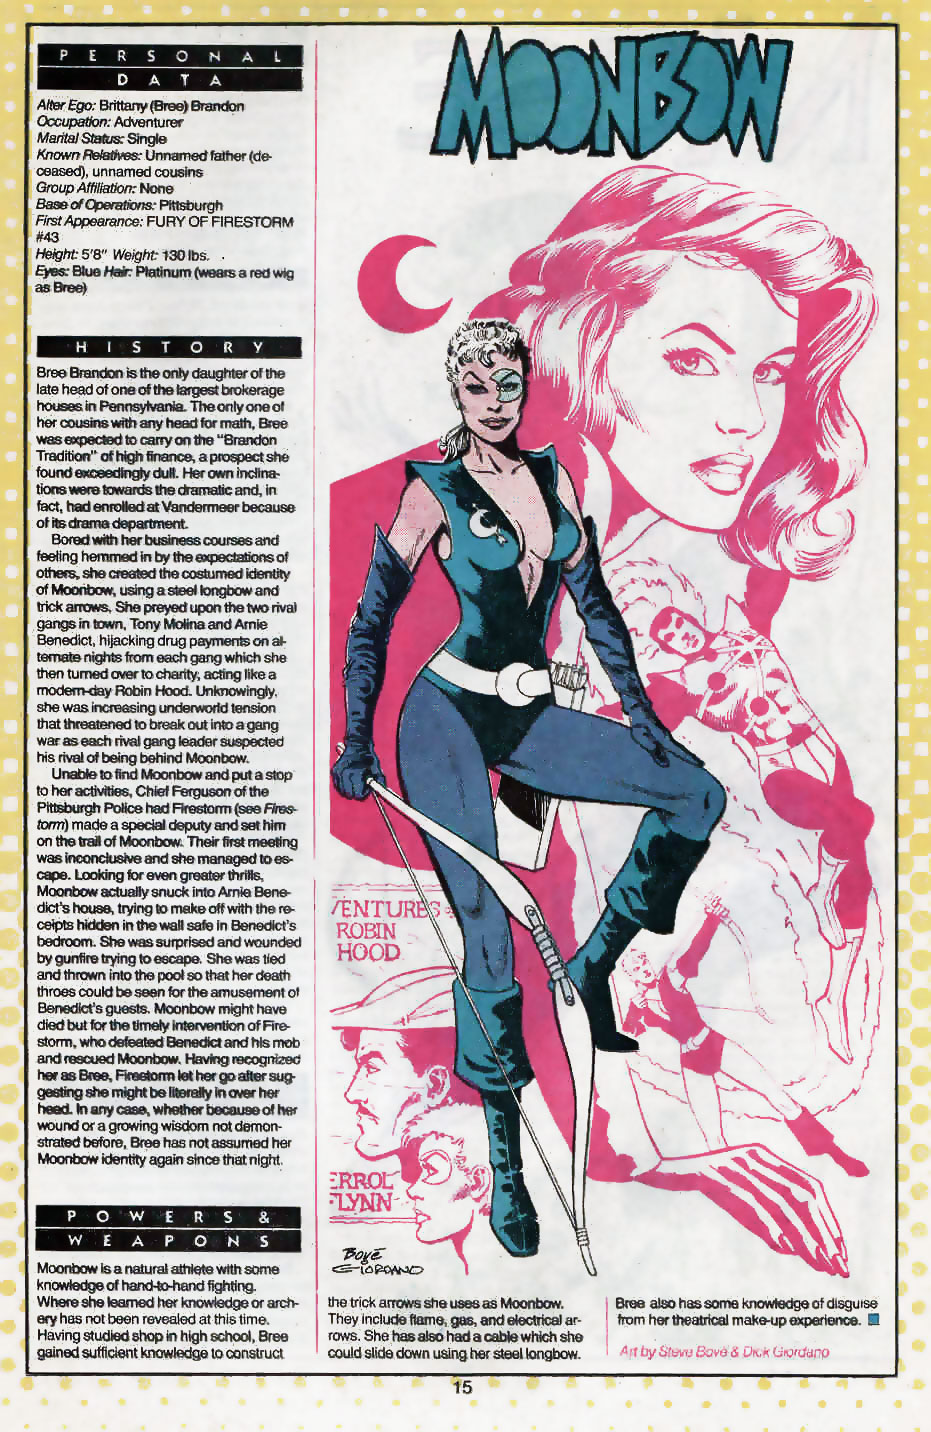 Moonbow Who's Who entry by Steve Bove and Dick Giordano